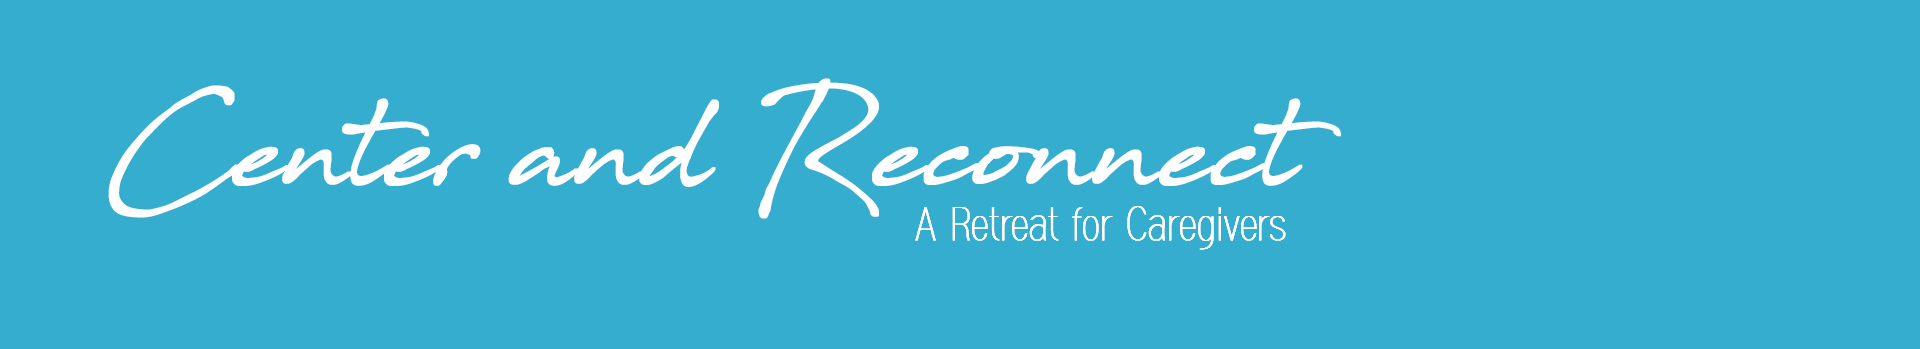 Center and Reconnect Retreat